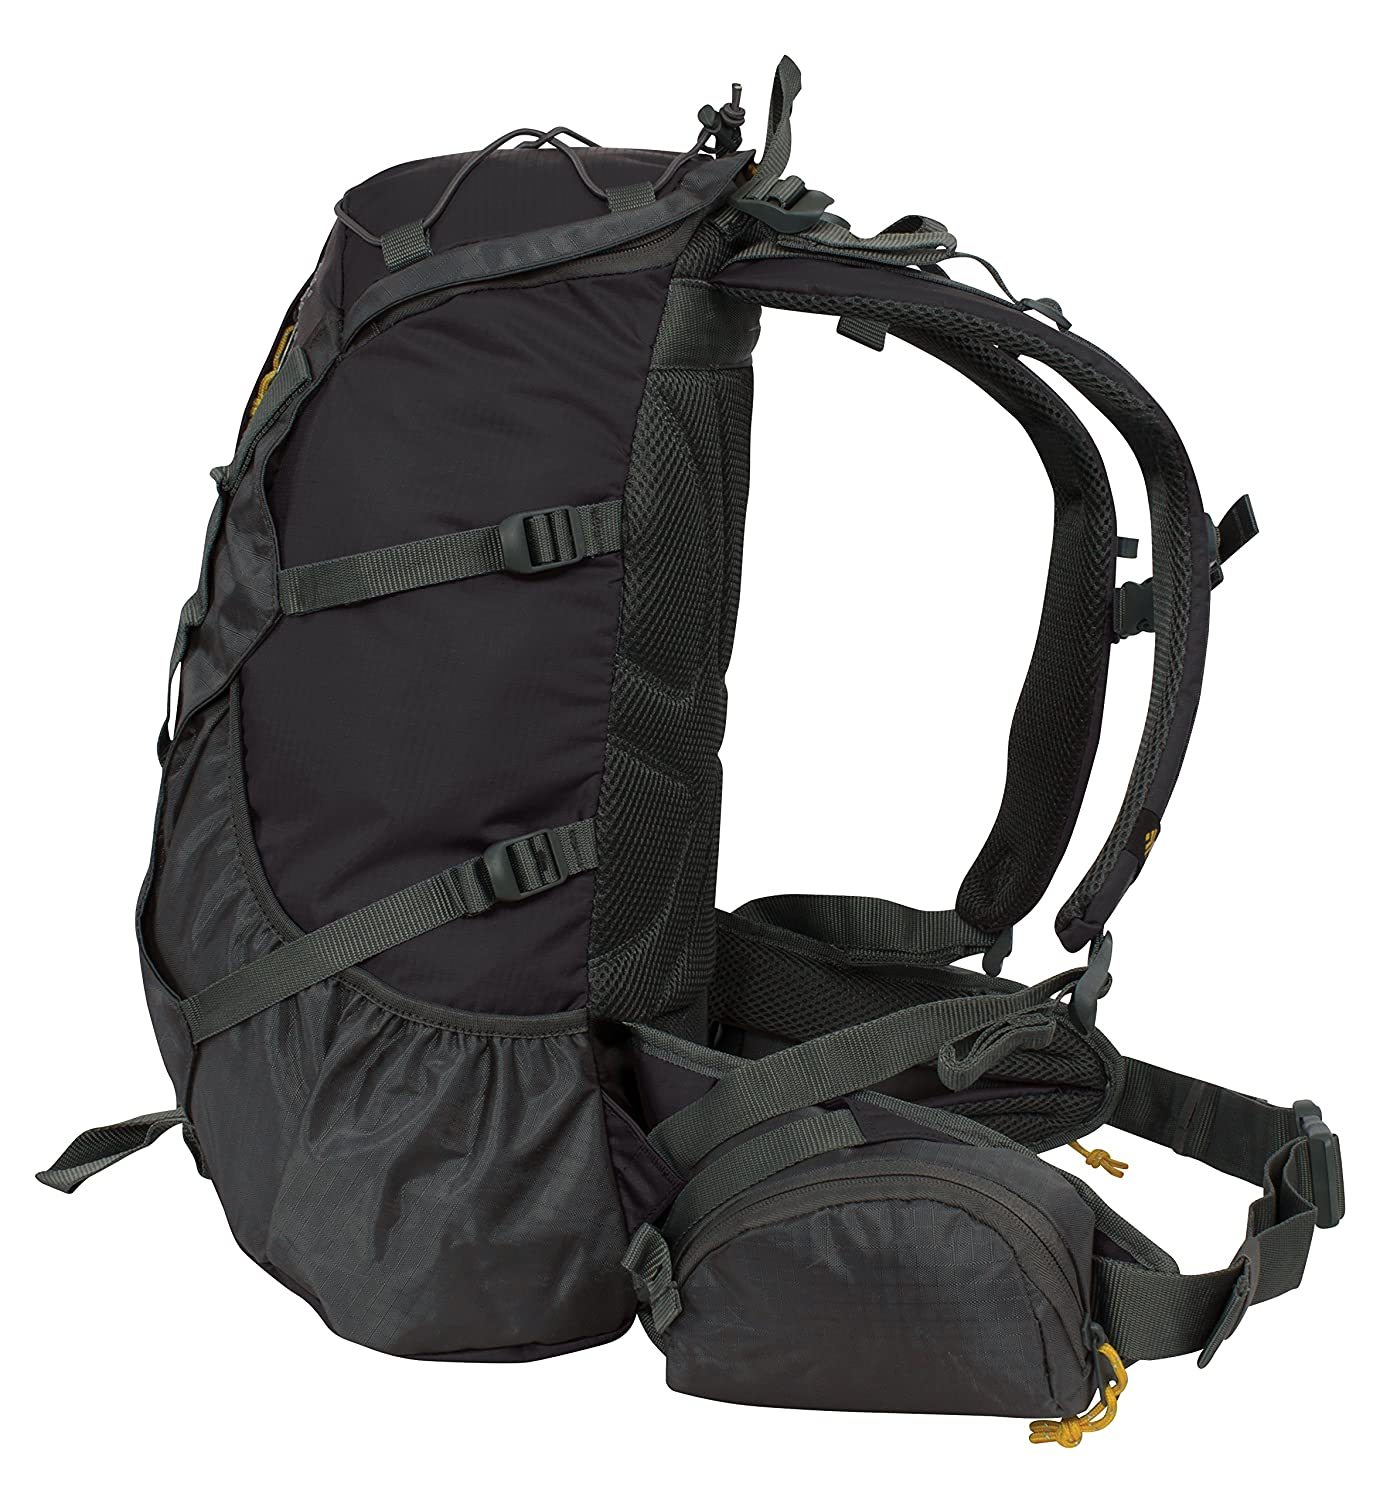 a3d4f5b3c185 Outdoor Products Skyline 8.0 Backpack- Fenix Toulouse Handball